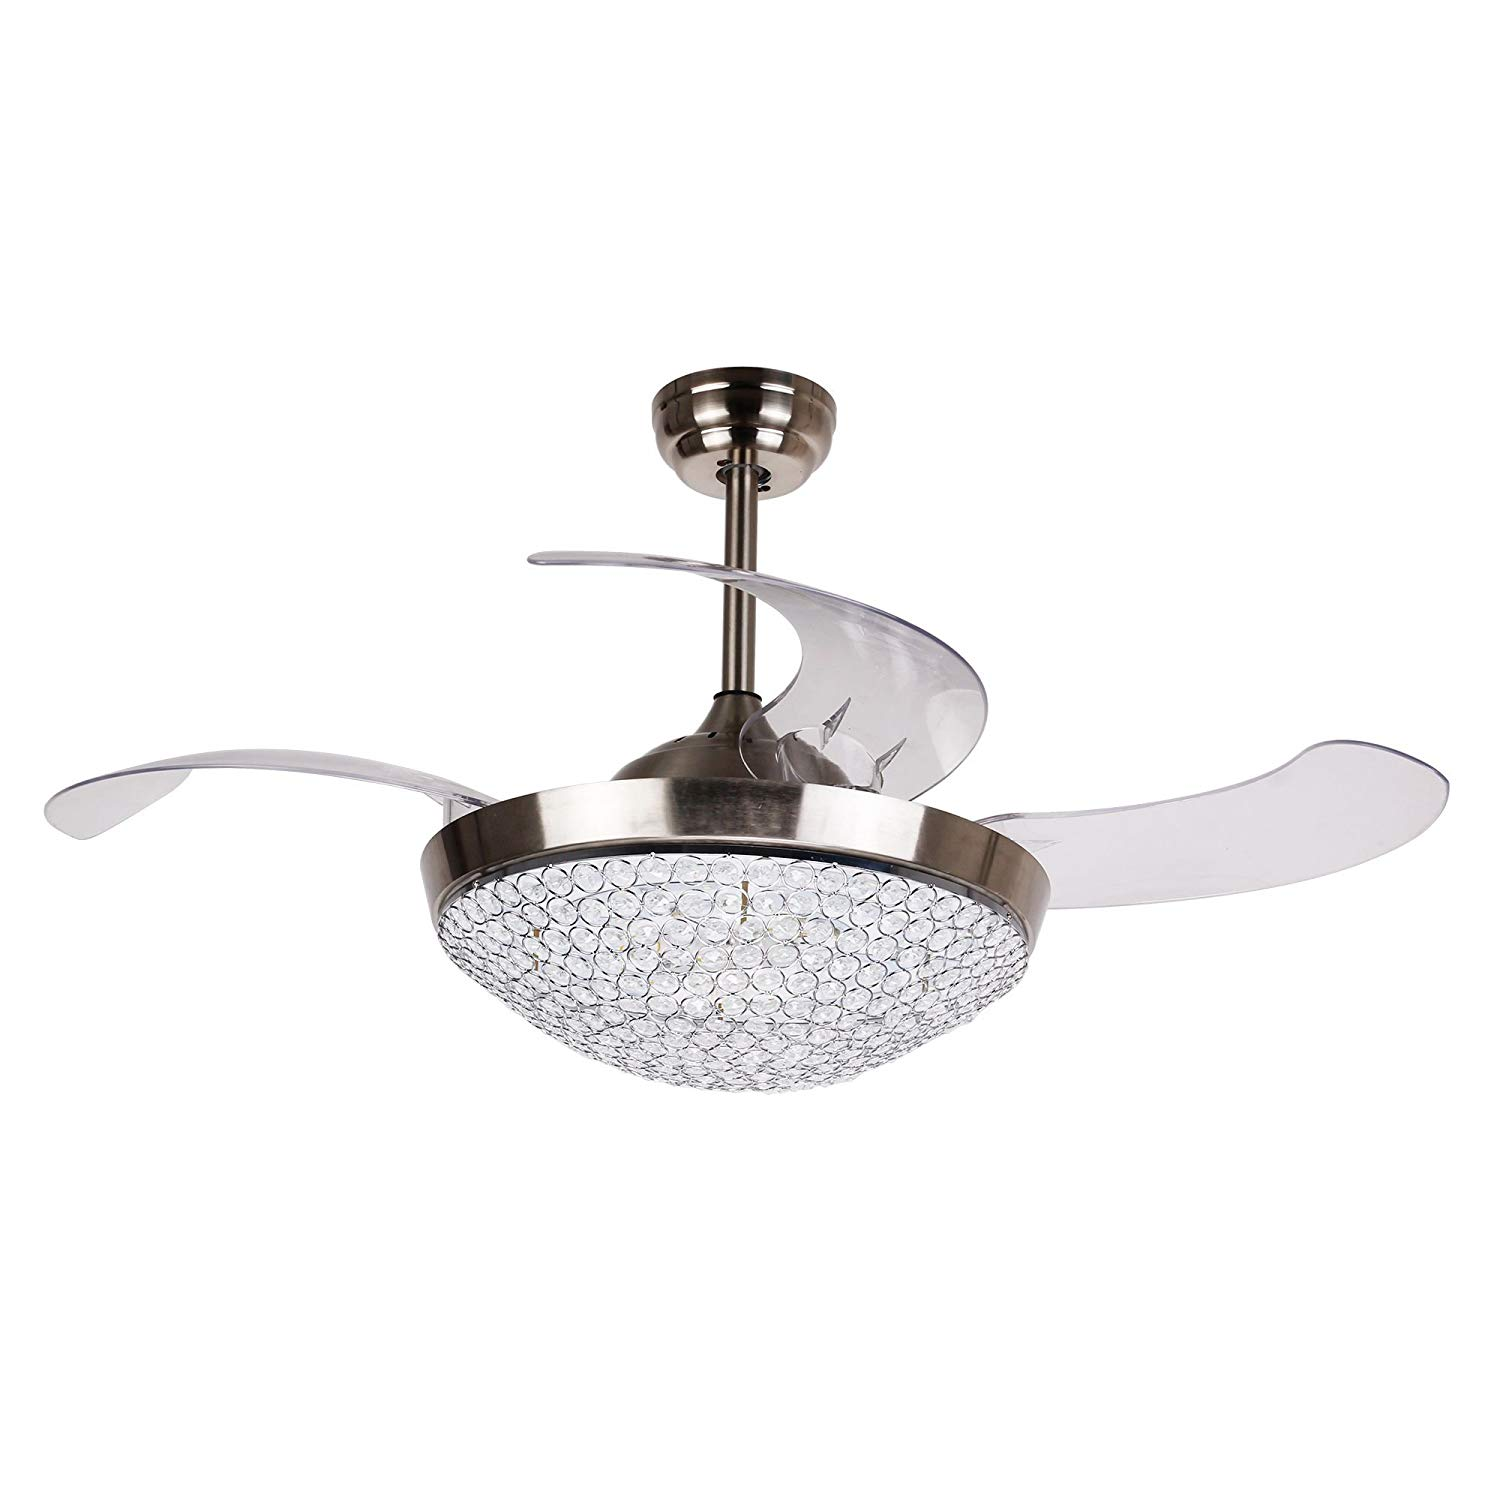 Ceiling Fan with Light 46 Inch LED Ceiling Fan Retractable Blades ...